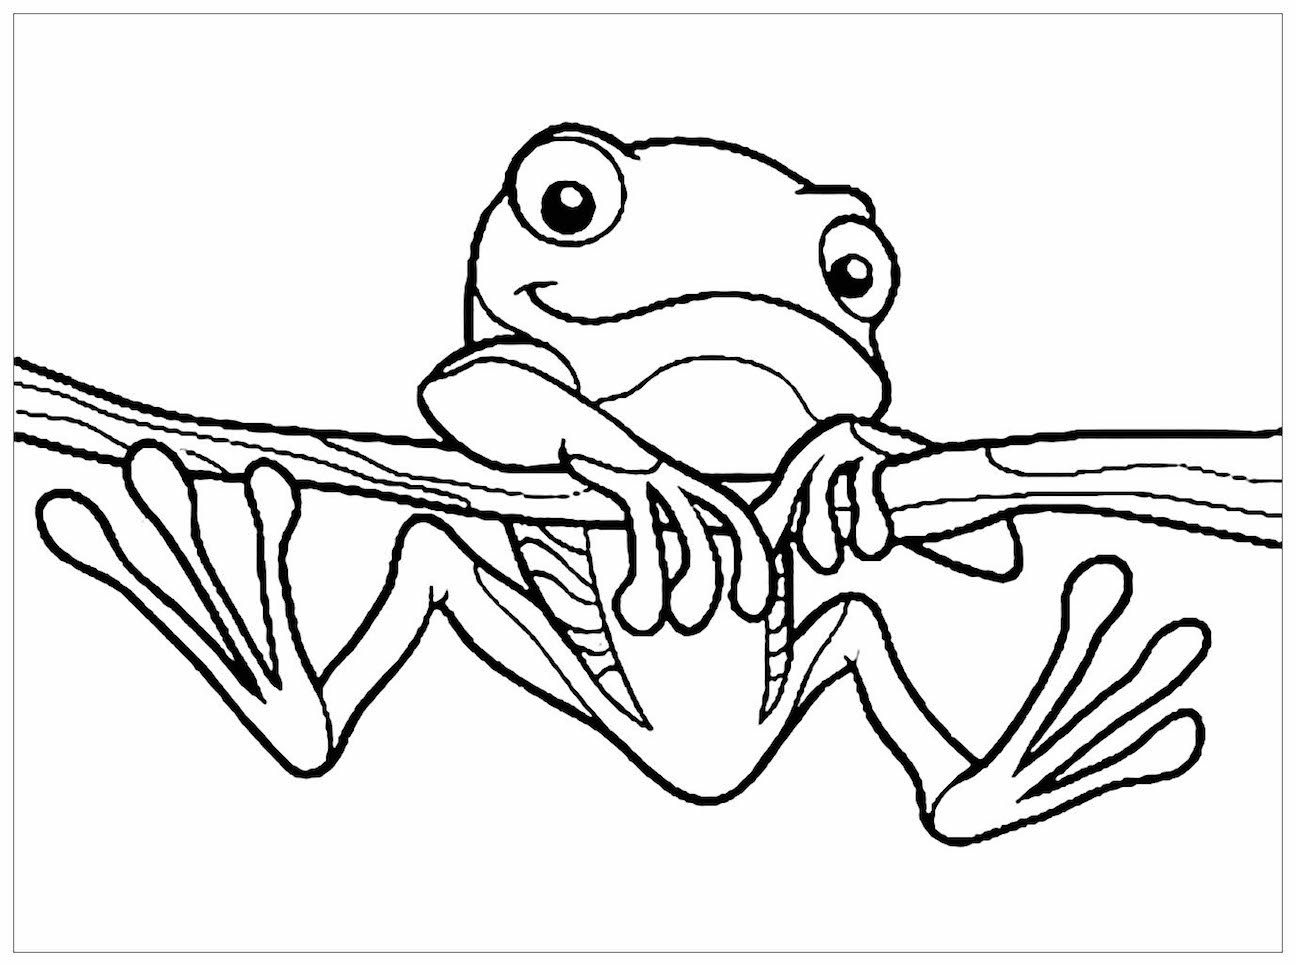 Frog Coloring Pages Clipart And Other Free Printable